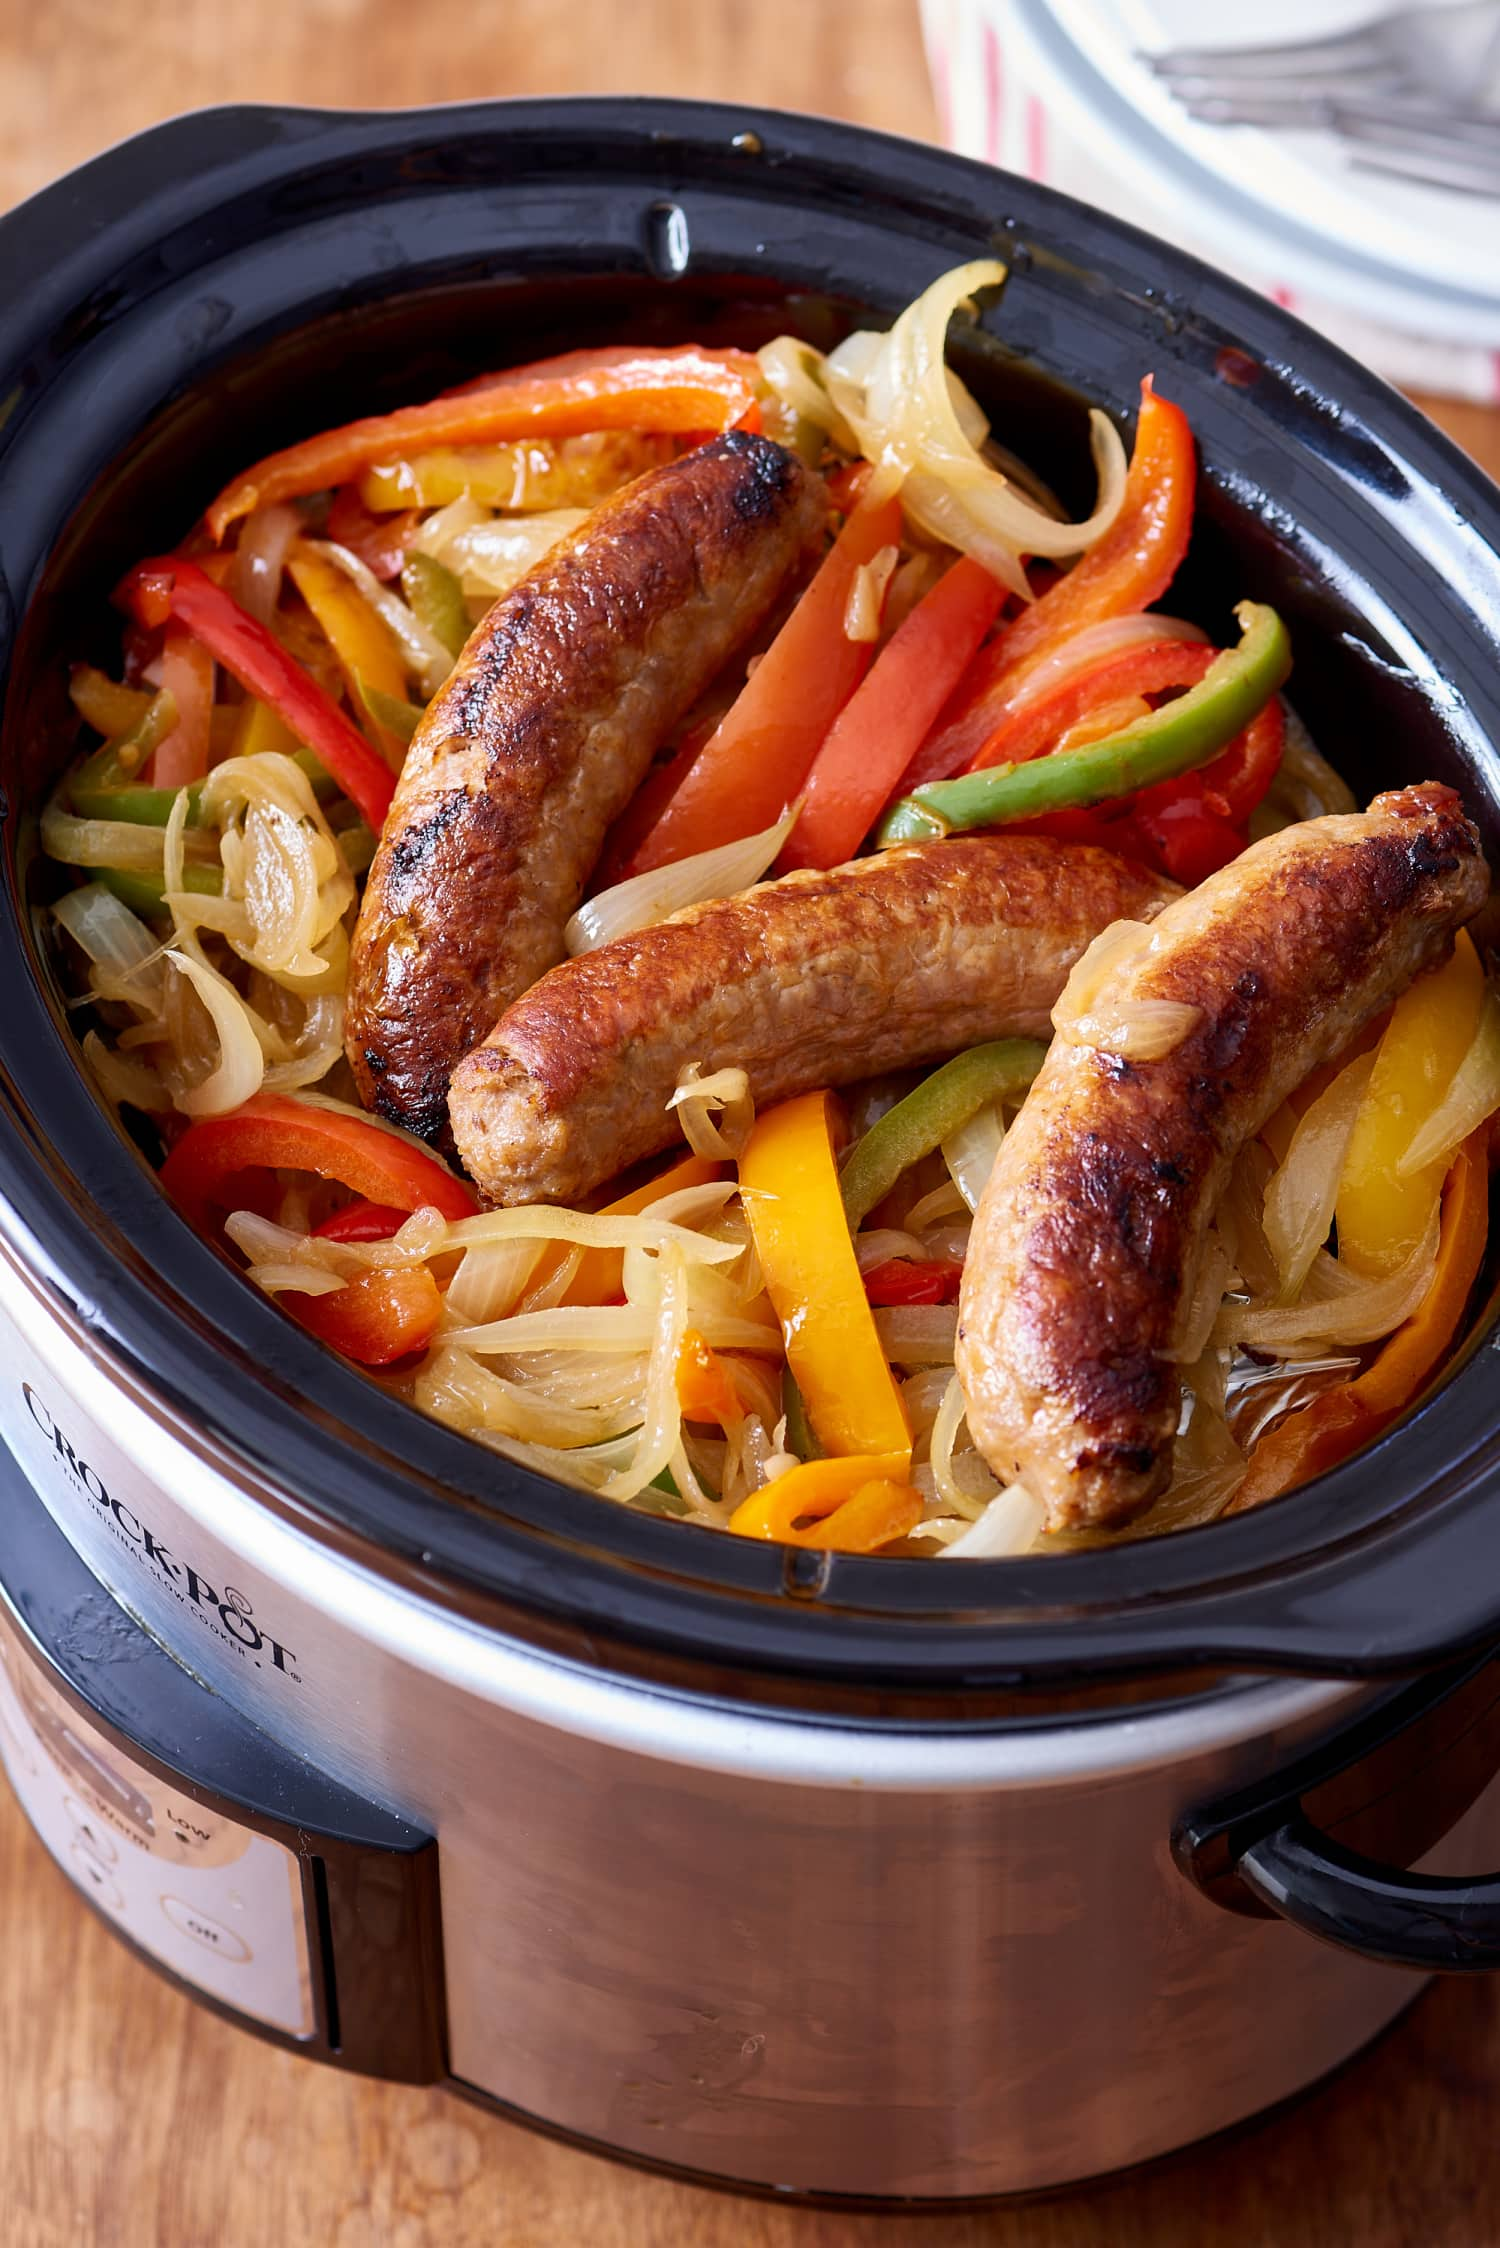 Recipe: Slow Cooker Sausages with Peppers and Onions